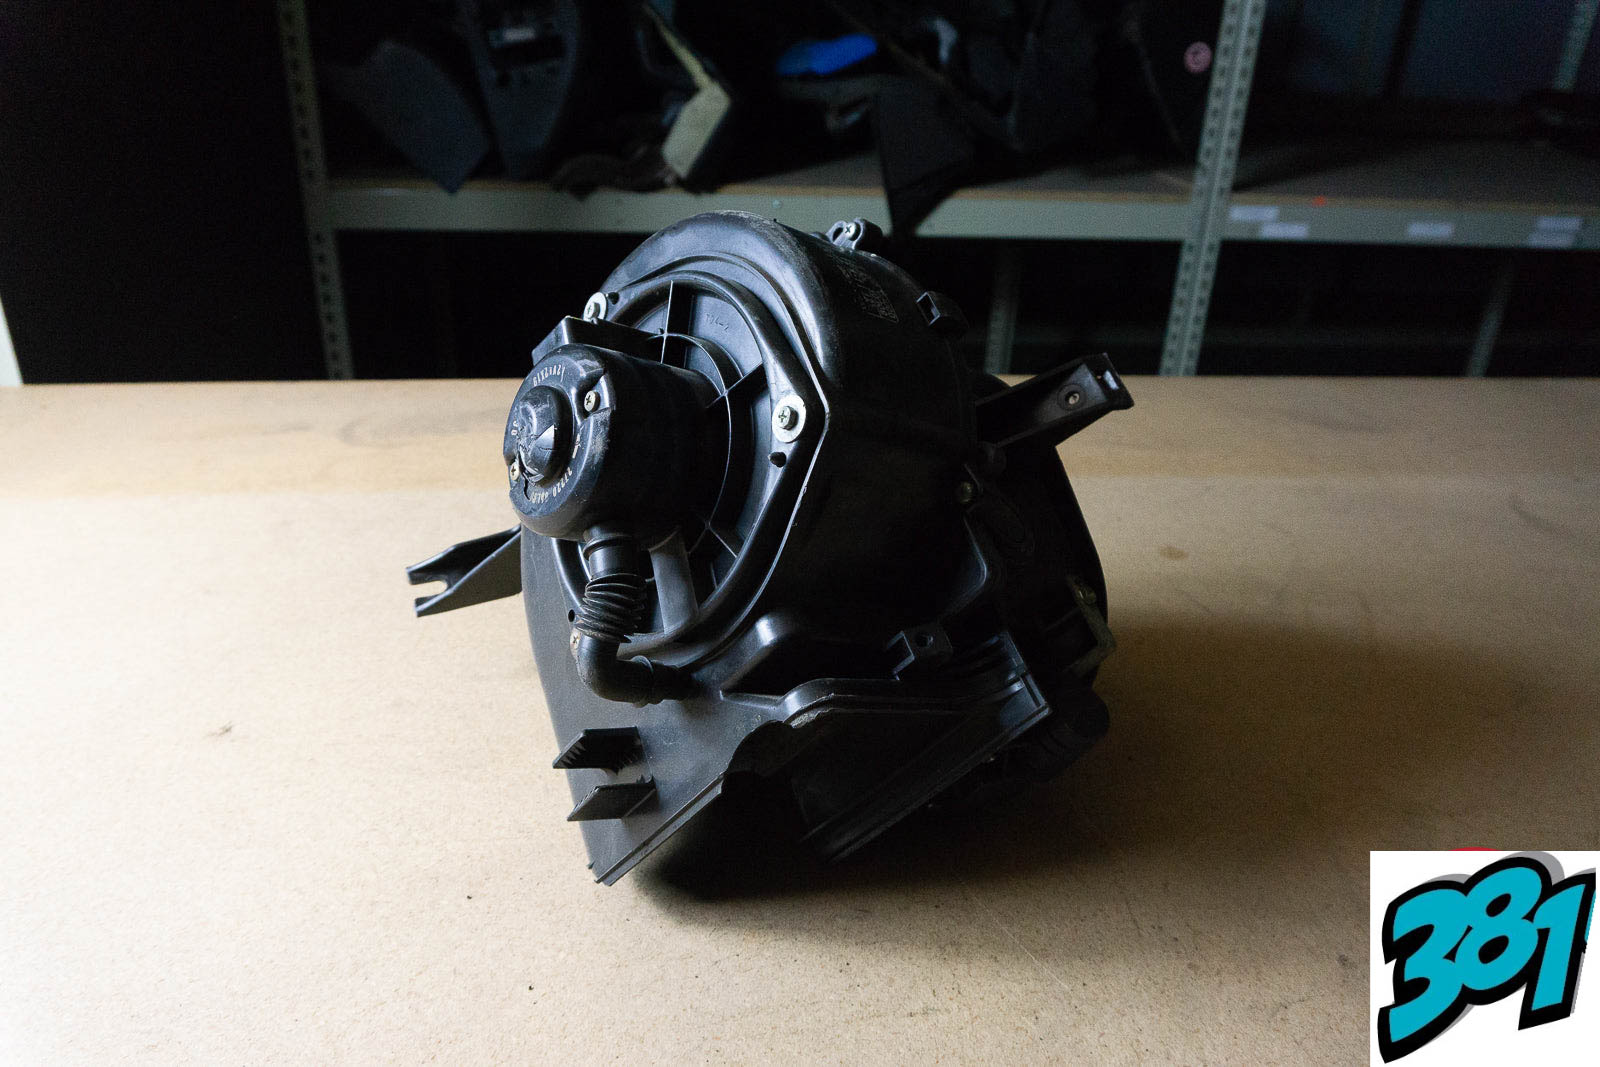 1989-1994 Nissan Skyline R32 OEM Blower Motor Blend Door A/C Box Heater Heat GTR GTST GTS GTE GXI BNR32 HCR32 HR32 FR32